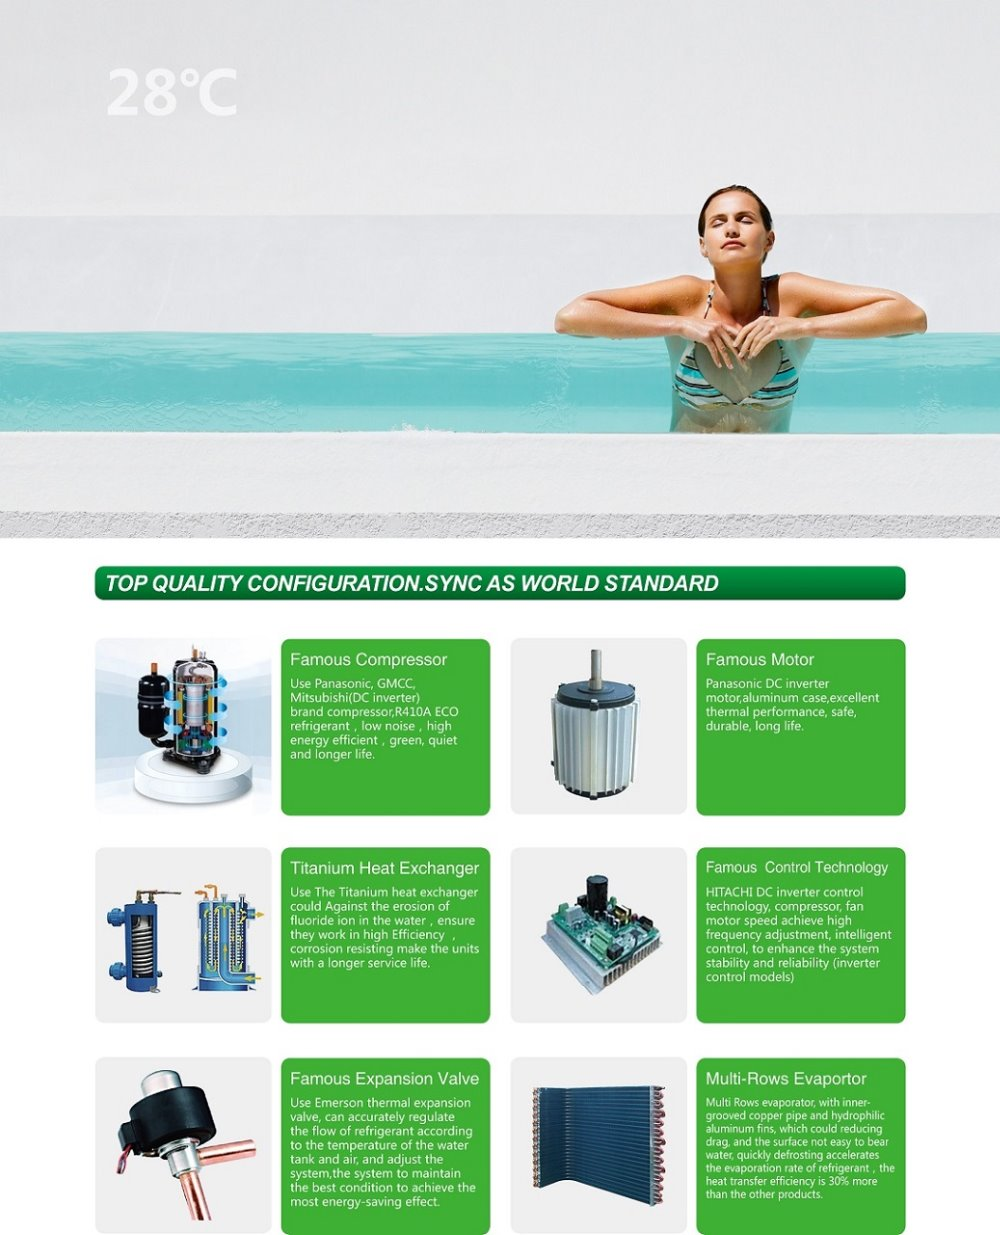 Swimming Pool Heat Pump Prices Lowes Buy Swimming Pool Heat Pump Heat Pump Prices Lowes Pool